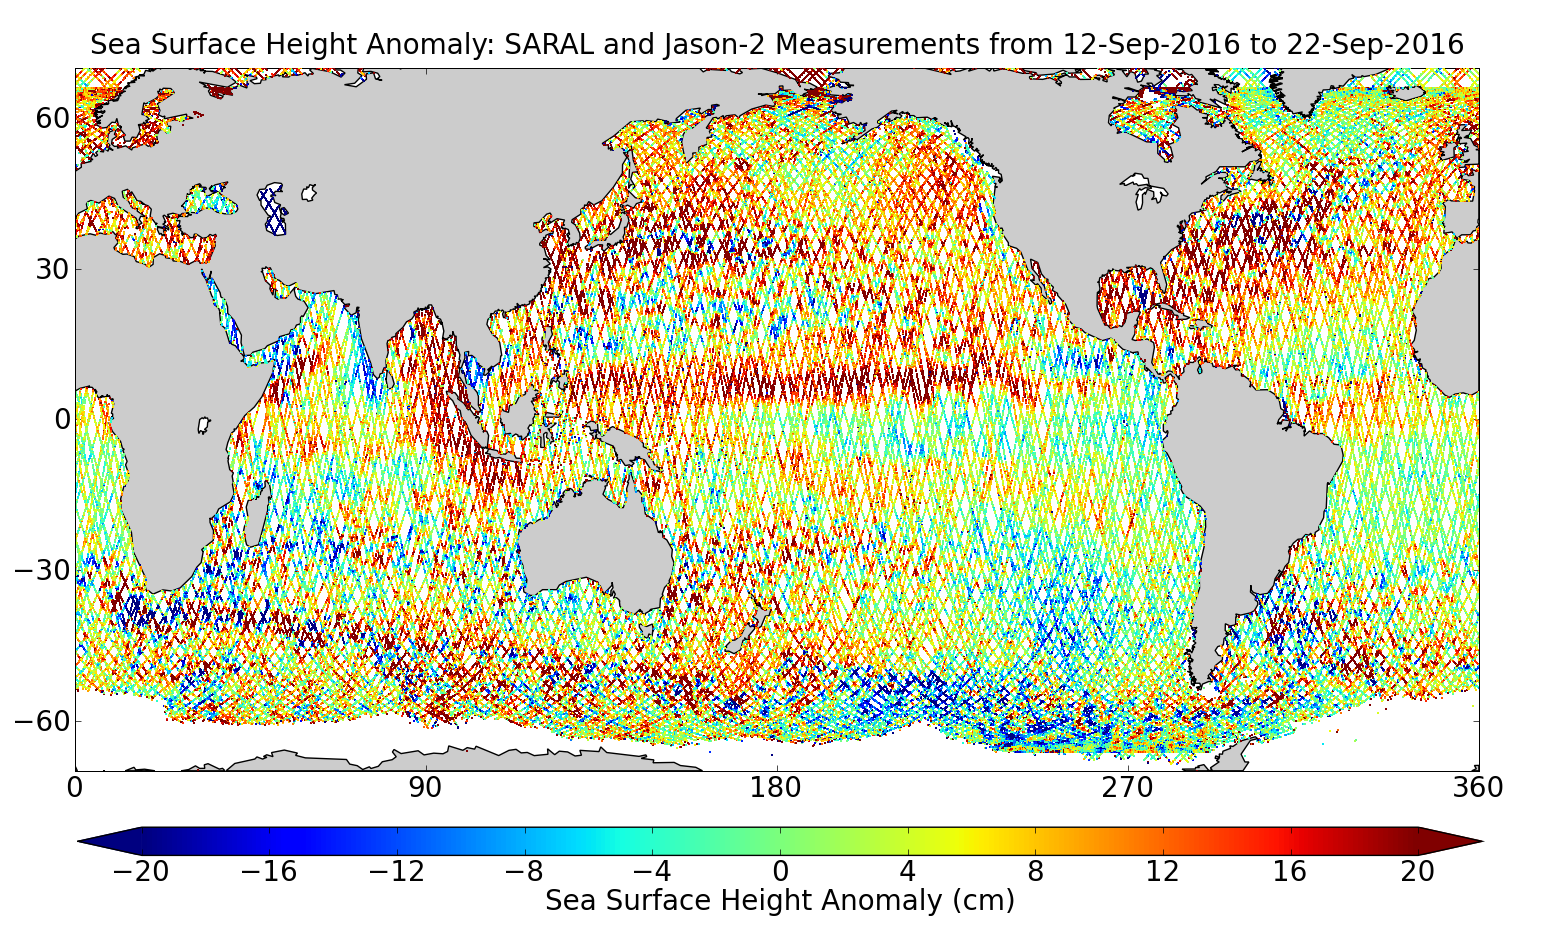 Sea Surface Height Anomaly: SARAL and Jason-2 Measurements from 12-Sep-2016 to 22-Sep-2016